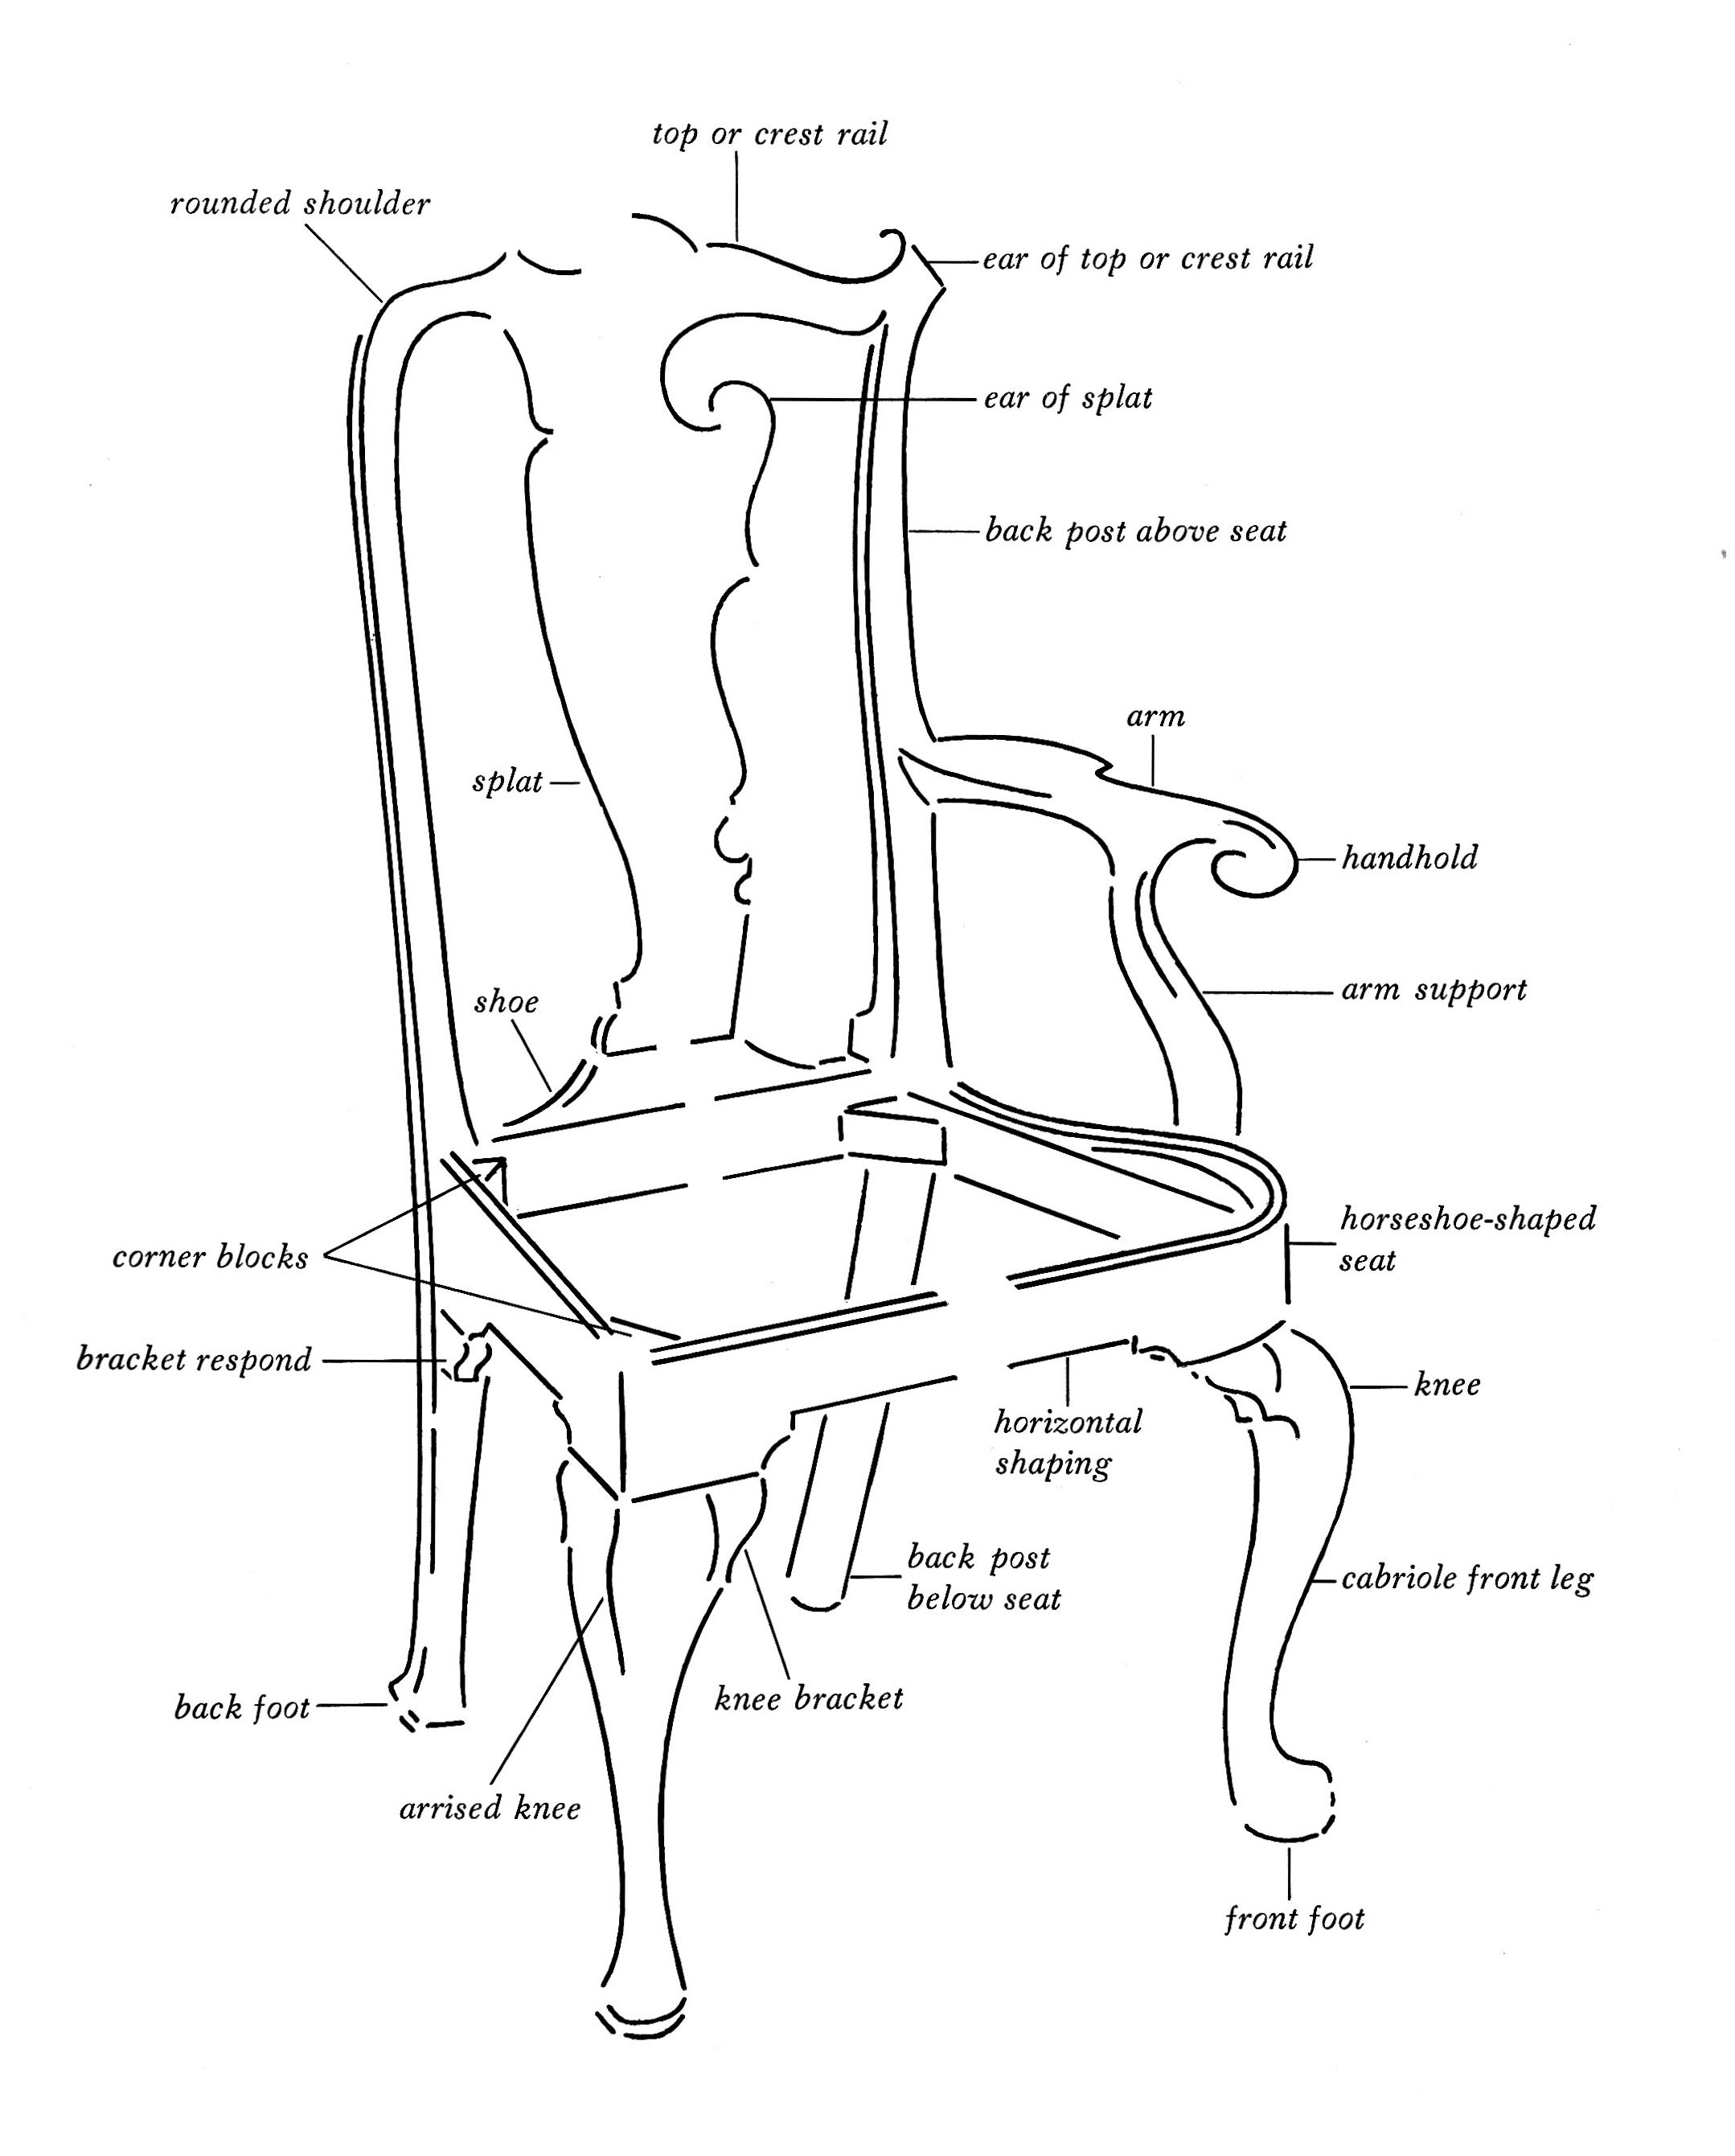 Queen anne chair history - Diagram Of A Queen Anne Chippendale Chair